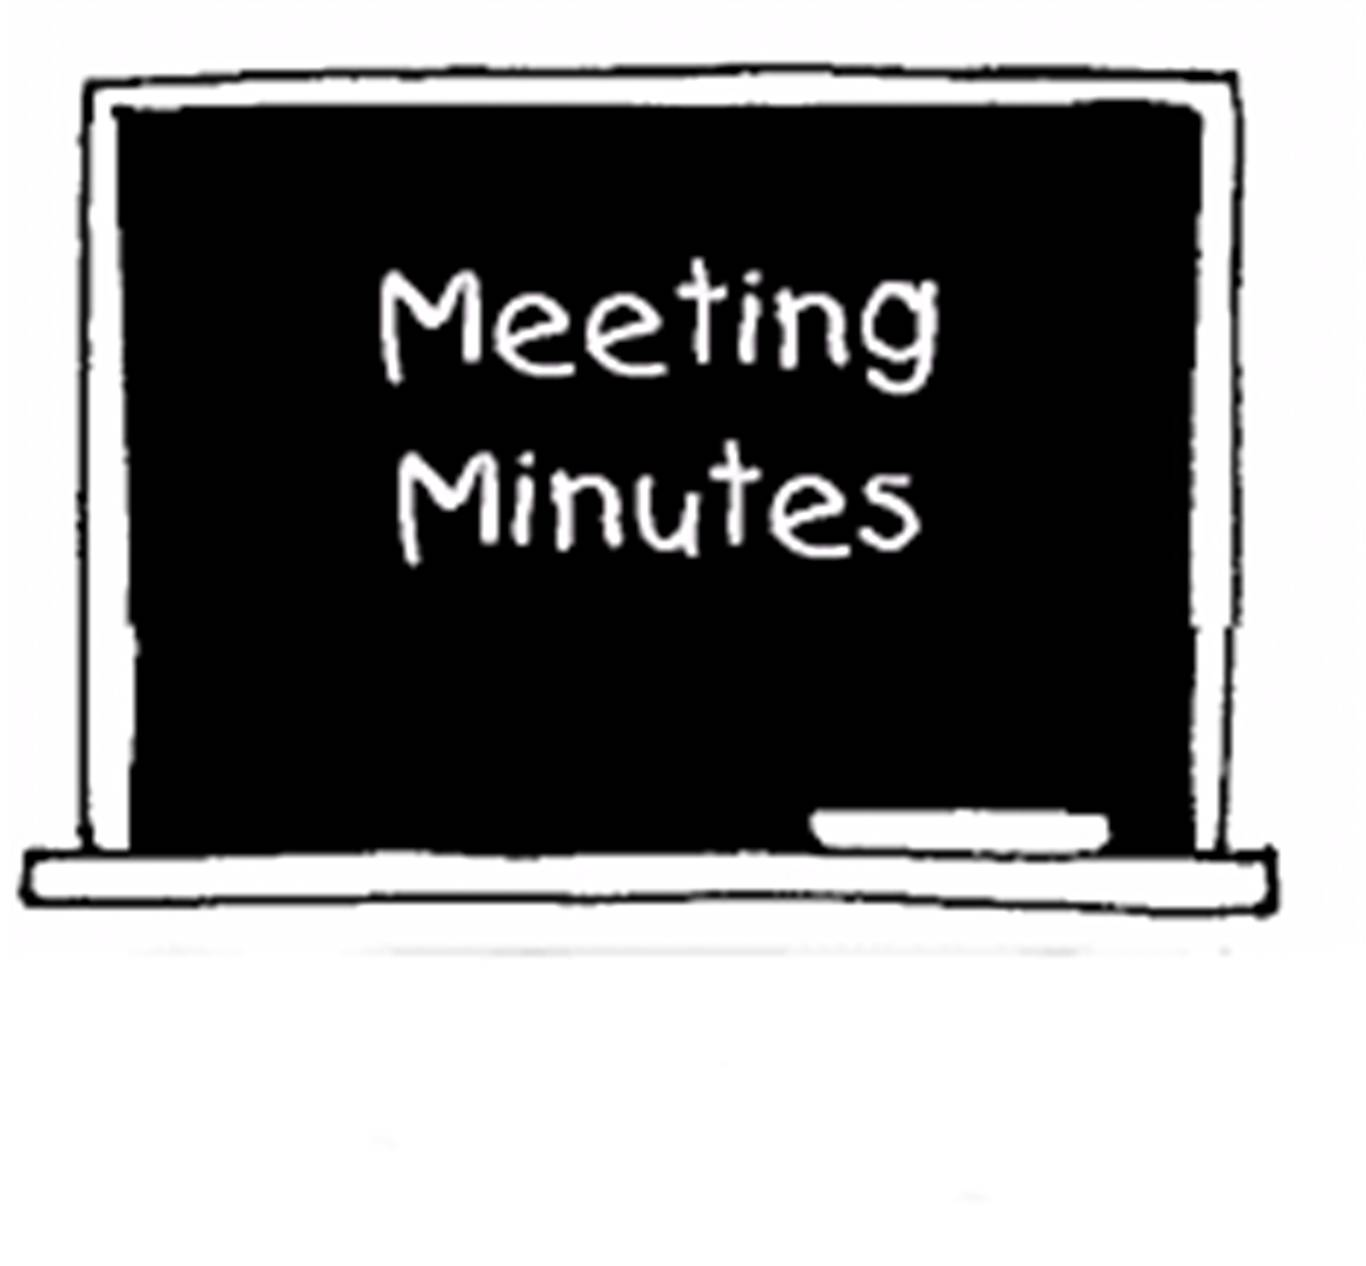 October 2017 CM Catholic School Council Meeting Minutes